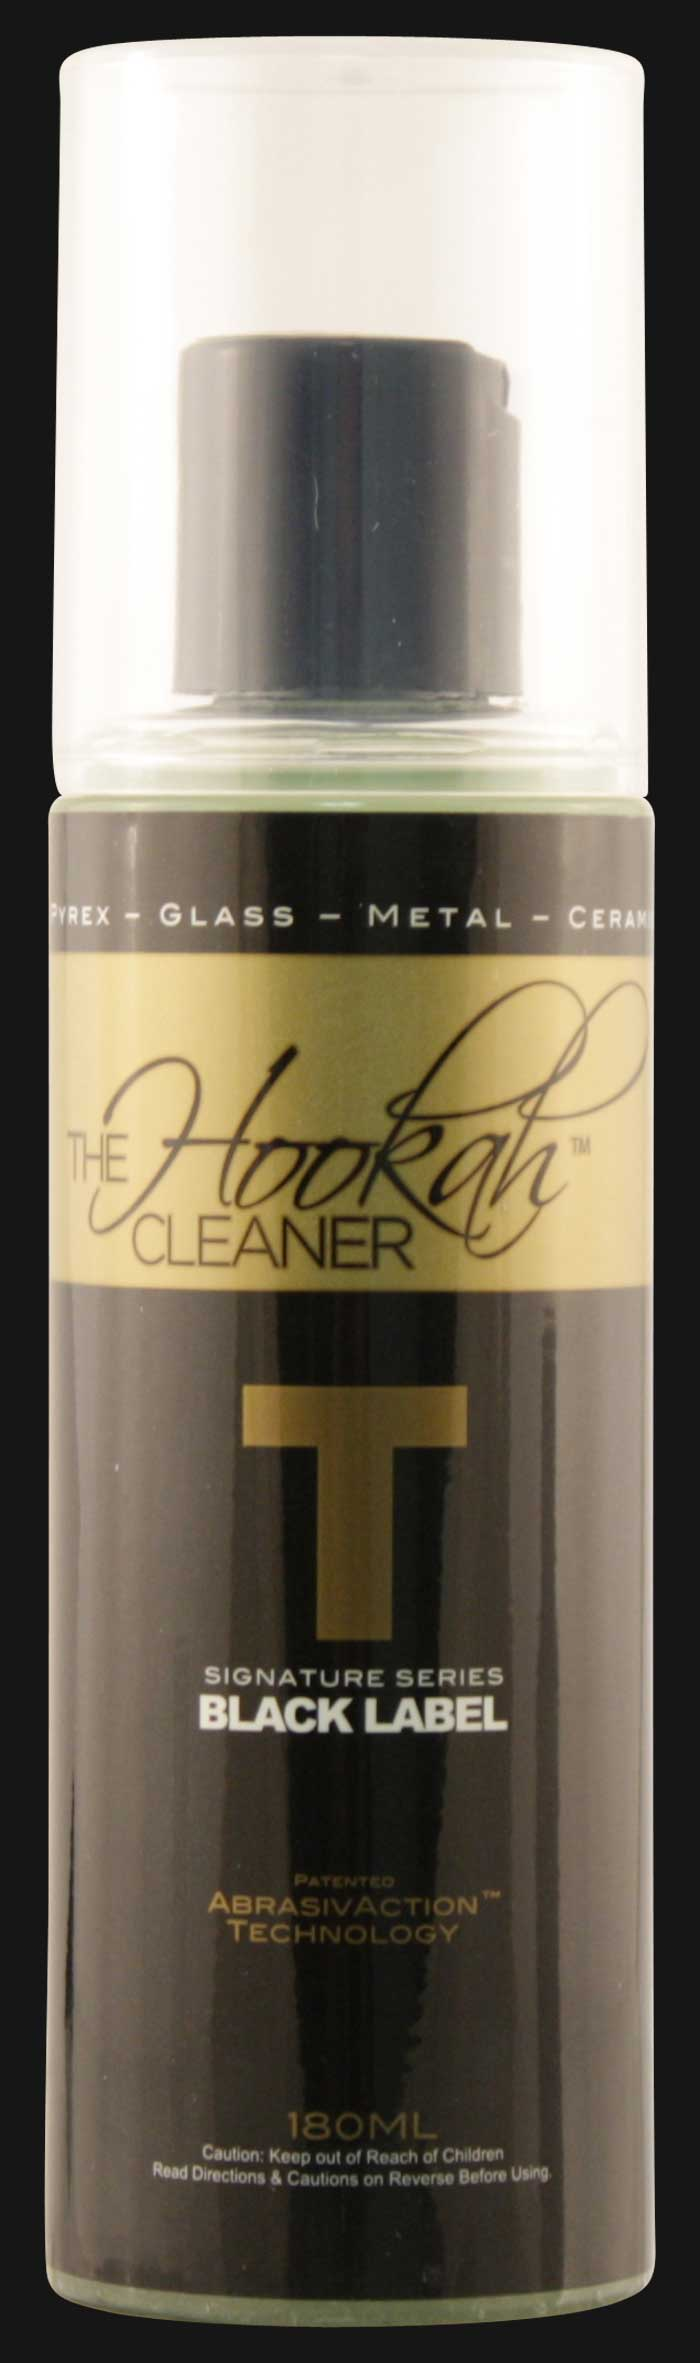 The Hookah Cleaner Black Label T